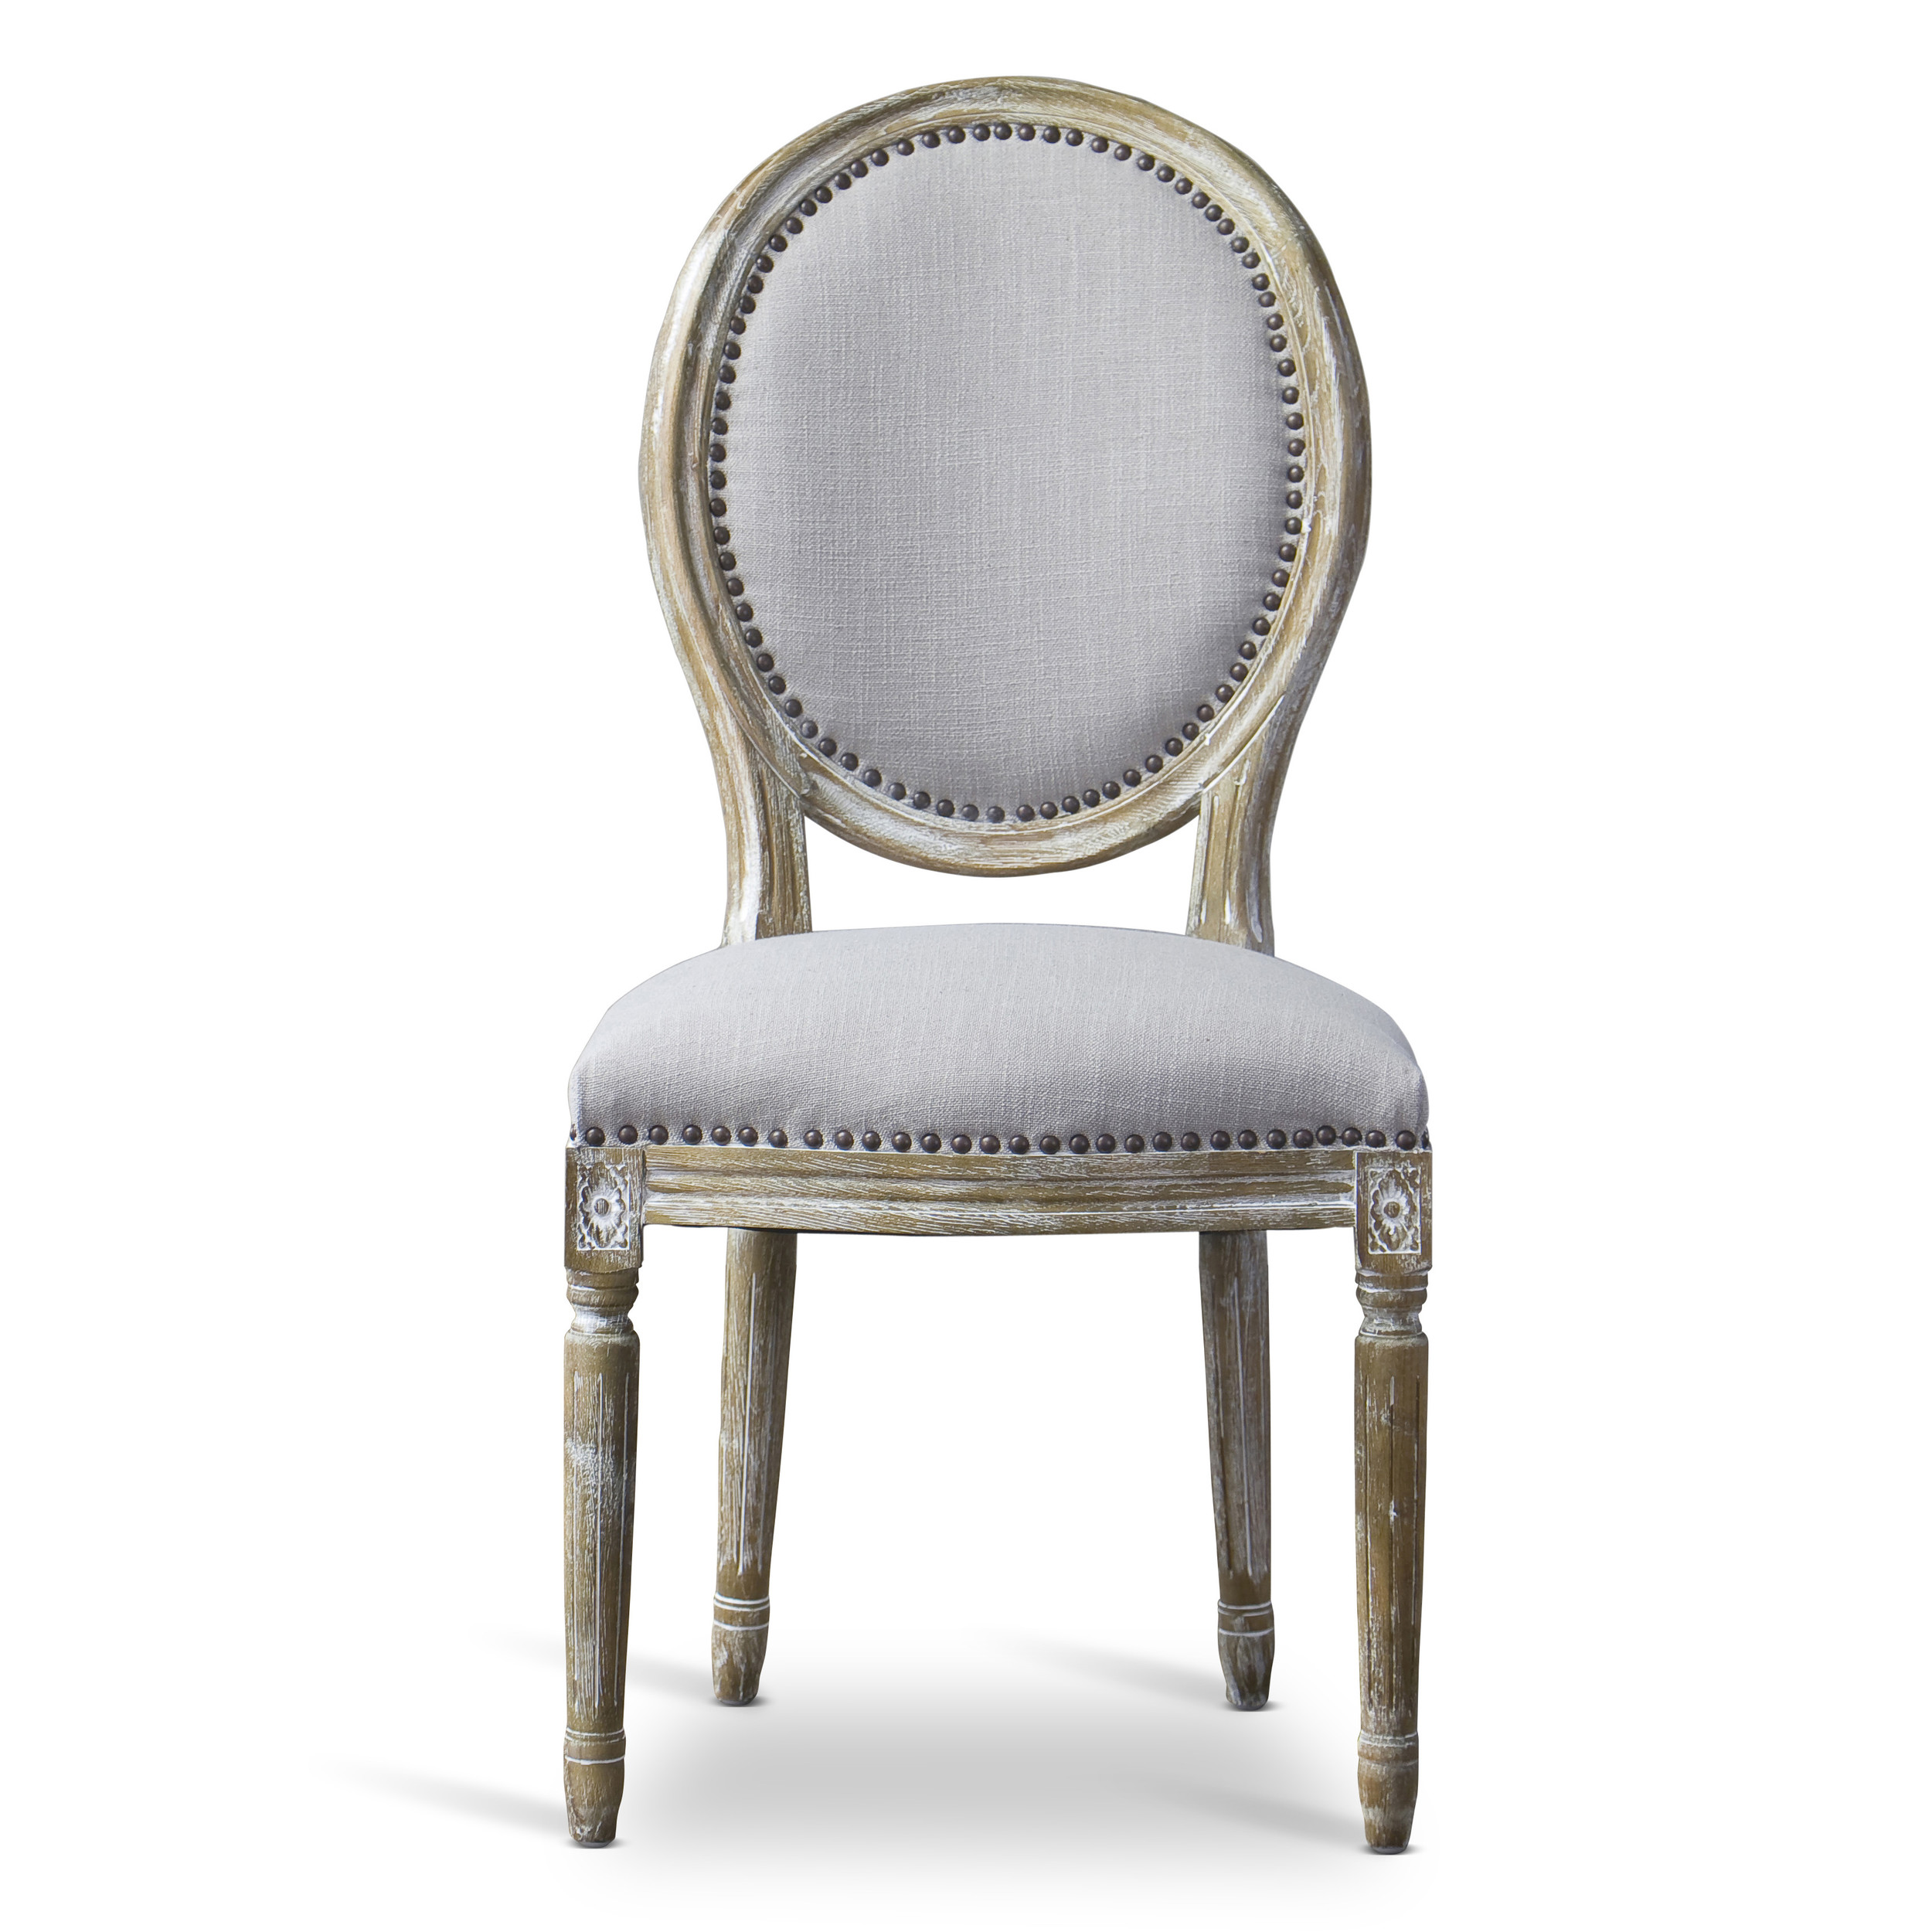 Hadrien-Wood-Traditional-French-Side-Chair-LARK2514.jpg